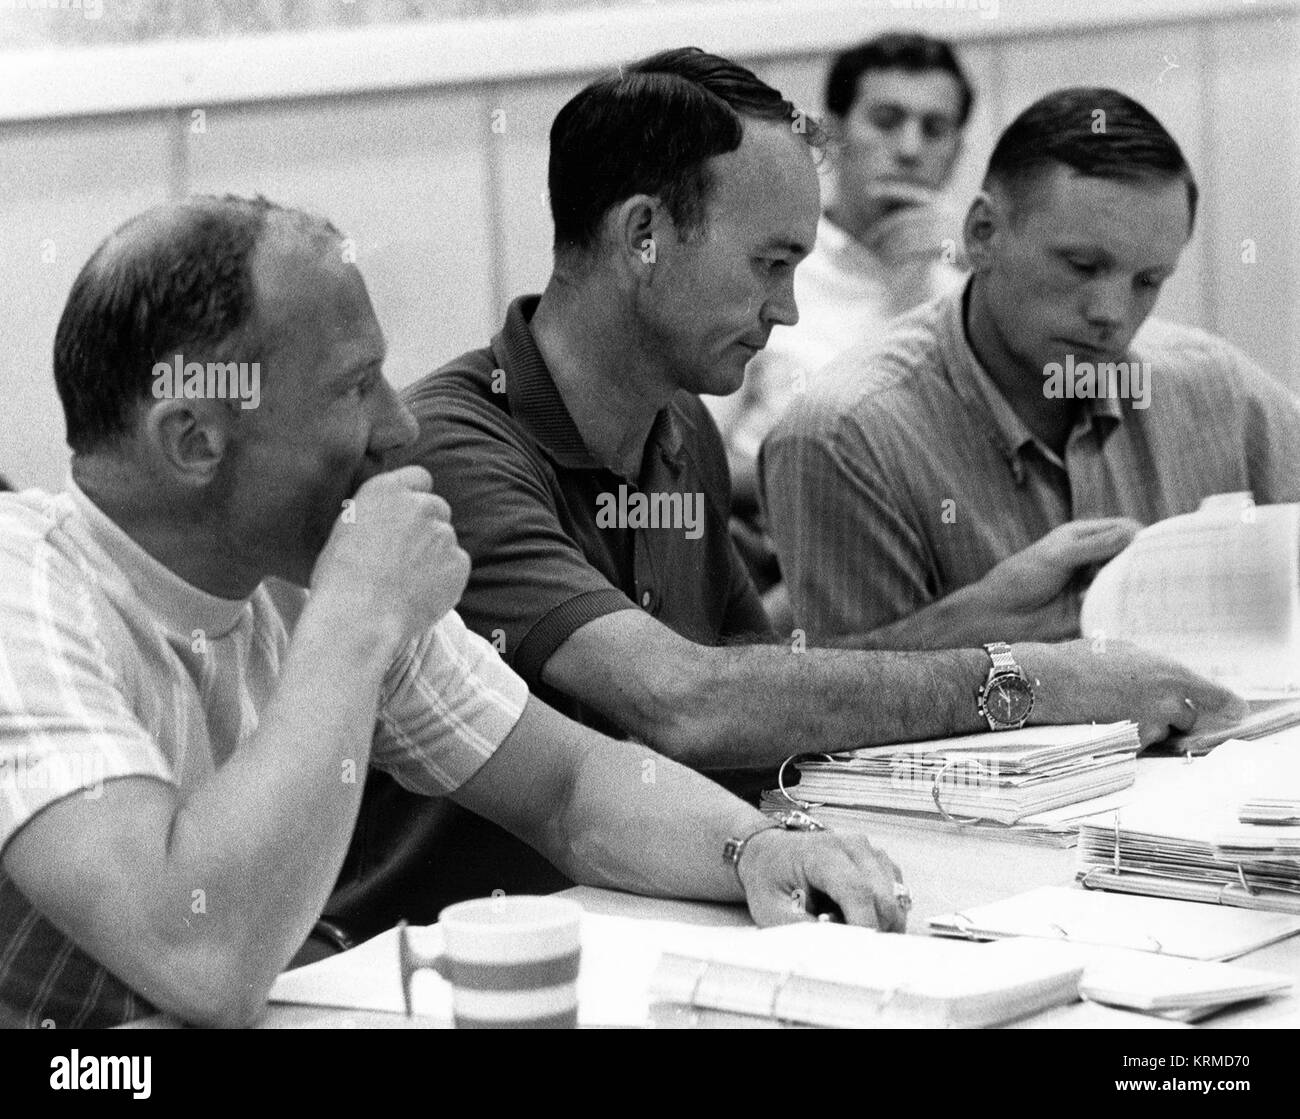 https://c8.alamy.com/comp/KRMD70/buzz-aldrin-left-mike-collins-and-neil-armstrong-review-flight-plans-KRMD70.jpg